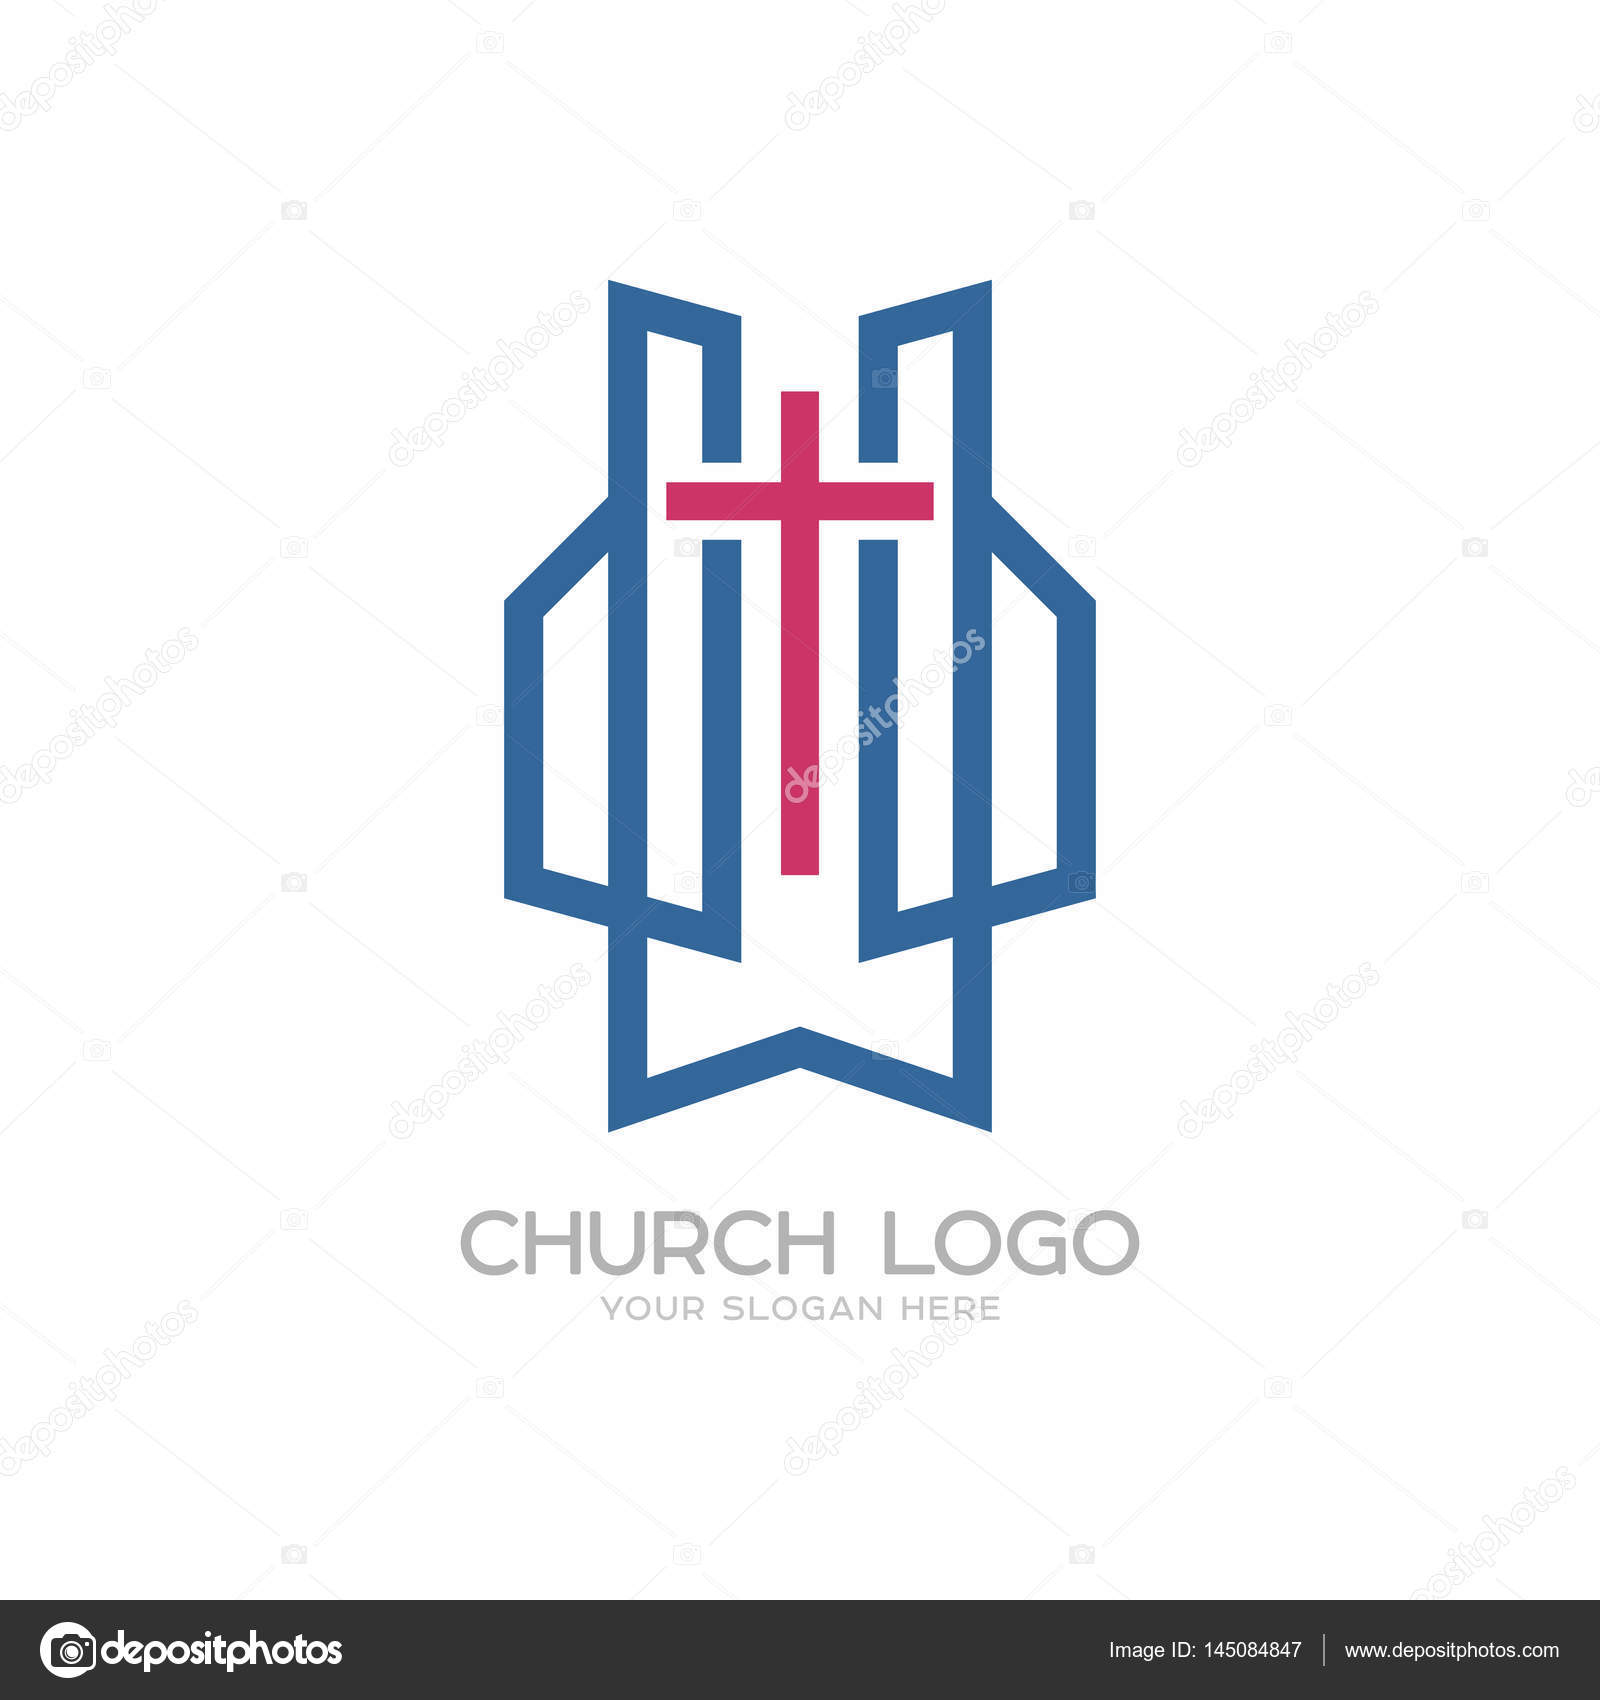 Church logo christian symbols cross of the lord and savior jesus christian symbols cross of the lord and savior jesus christ biocorpaavc Image collections